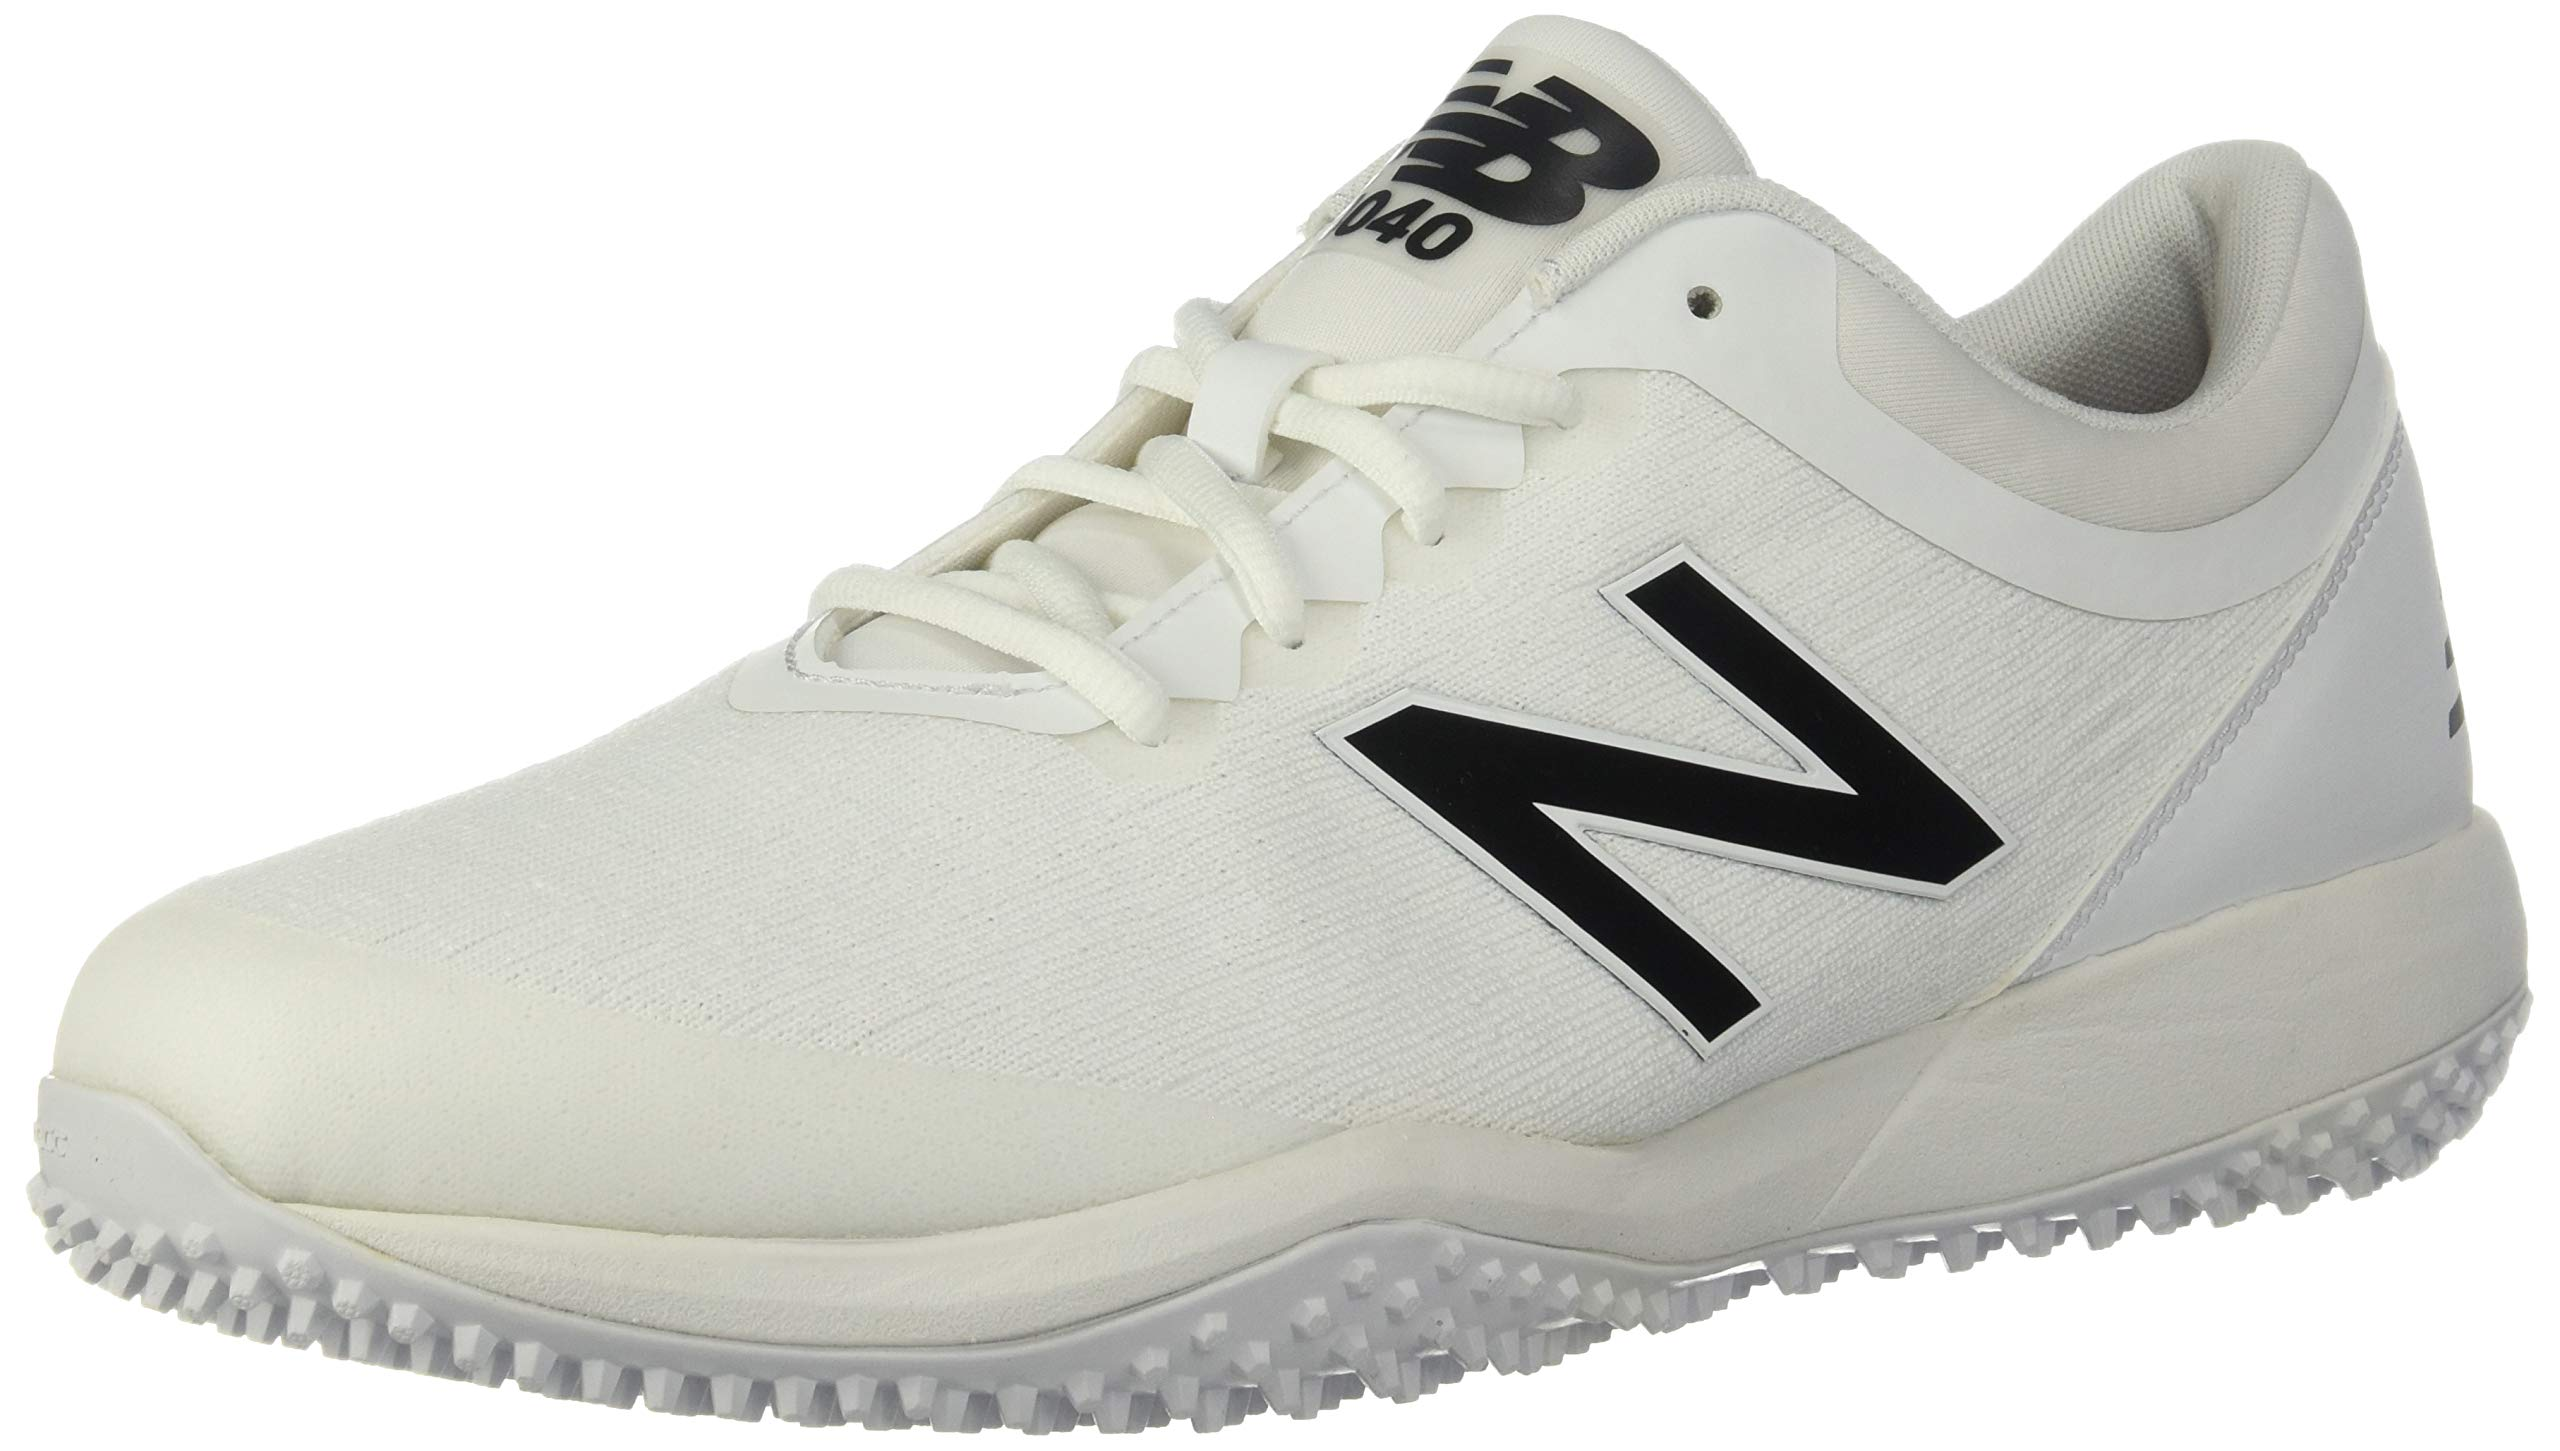 New Balance Men's 4040v5 Turf Running Shoe, All White, 5 D US